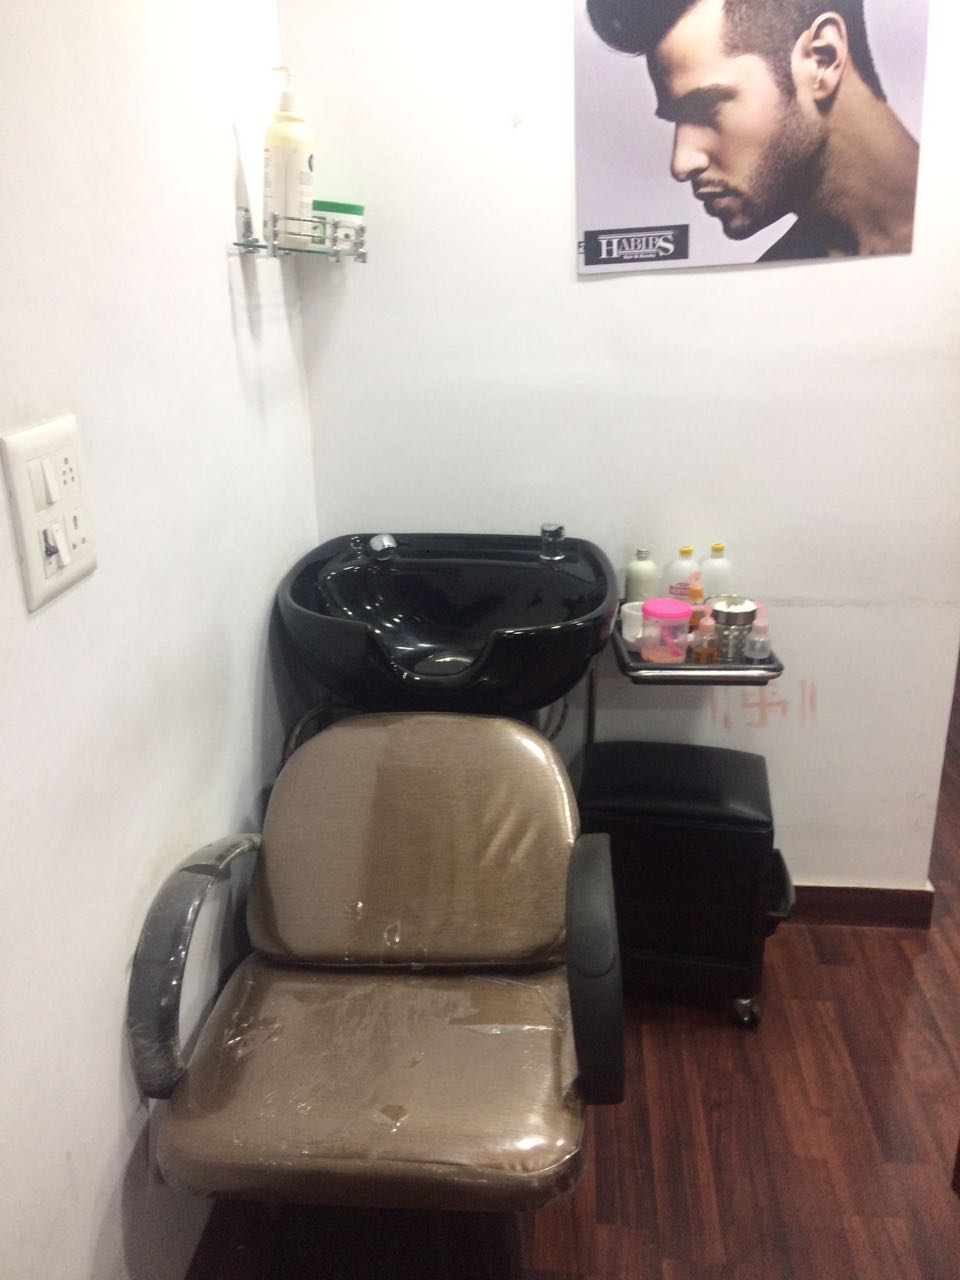 habibs-hair-beauty-new-delhi-lajpat-nagar